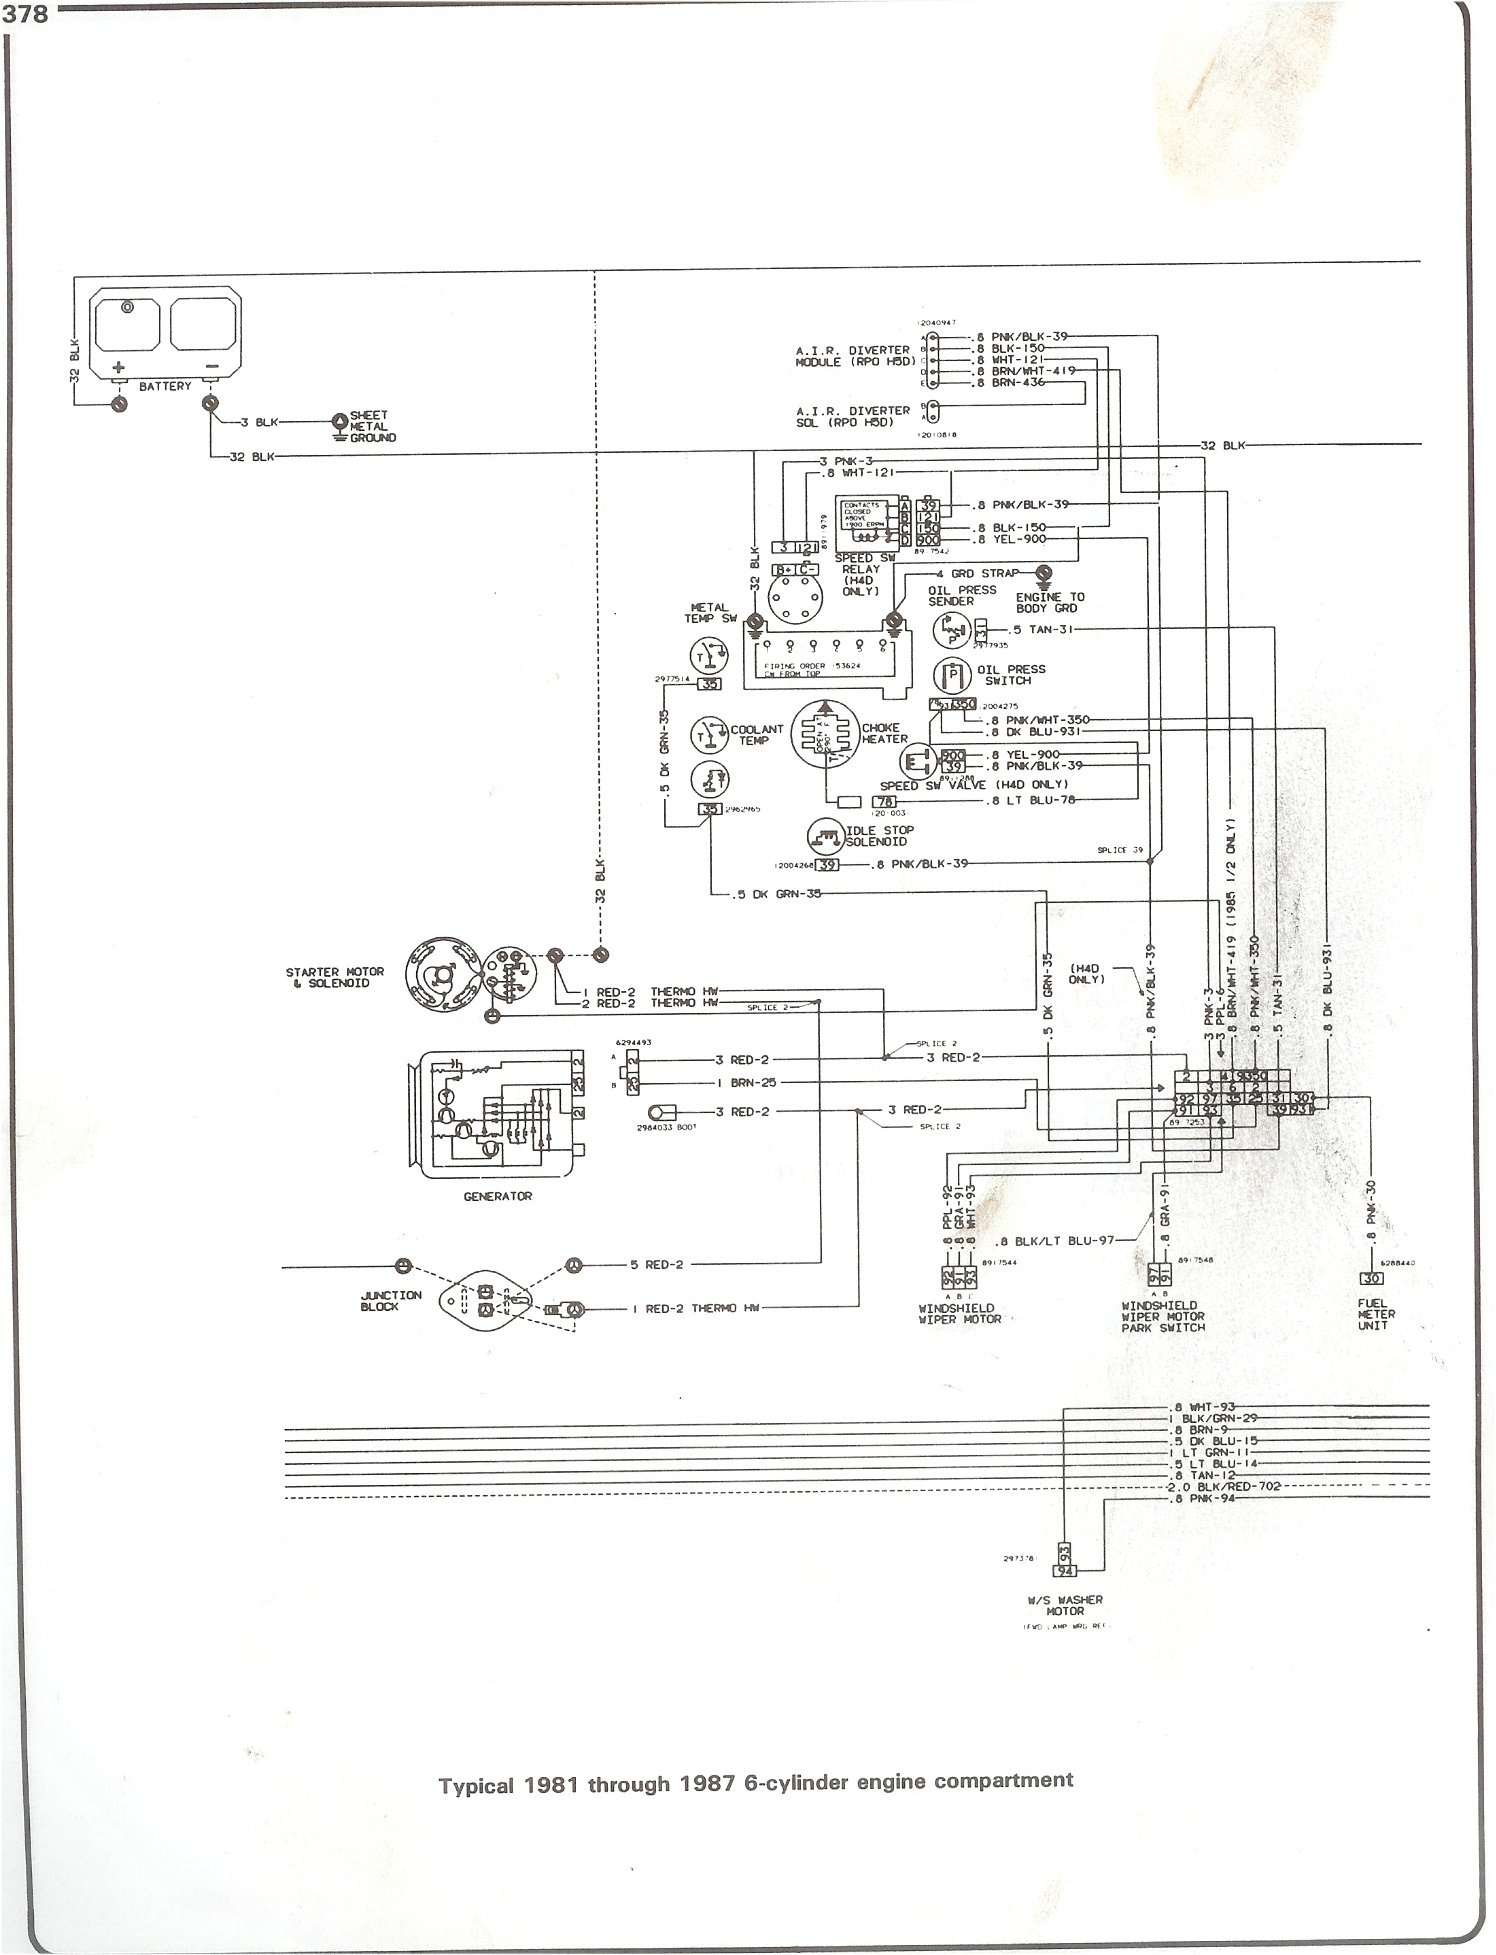 1976 Chevy Ignition Wiring Diagrams Schema Complete 73 87 350 Diagram